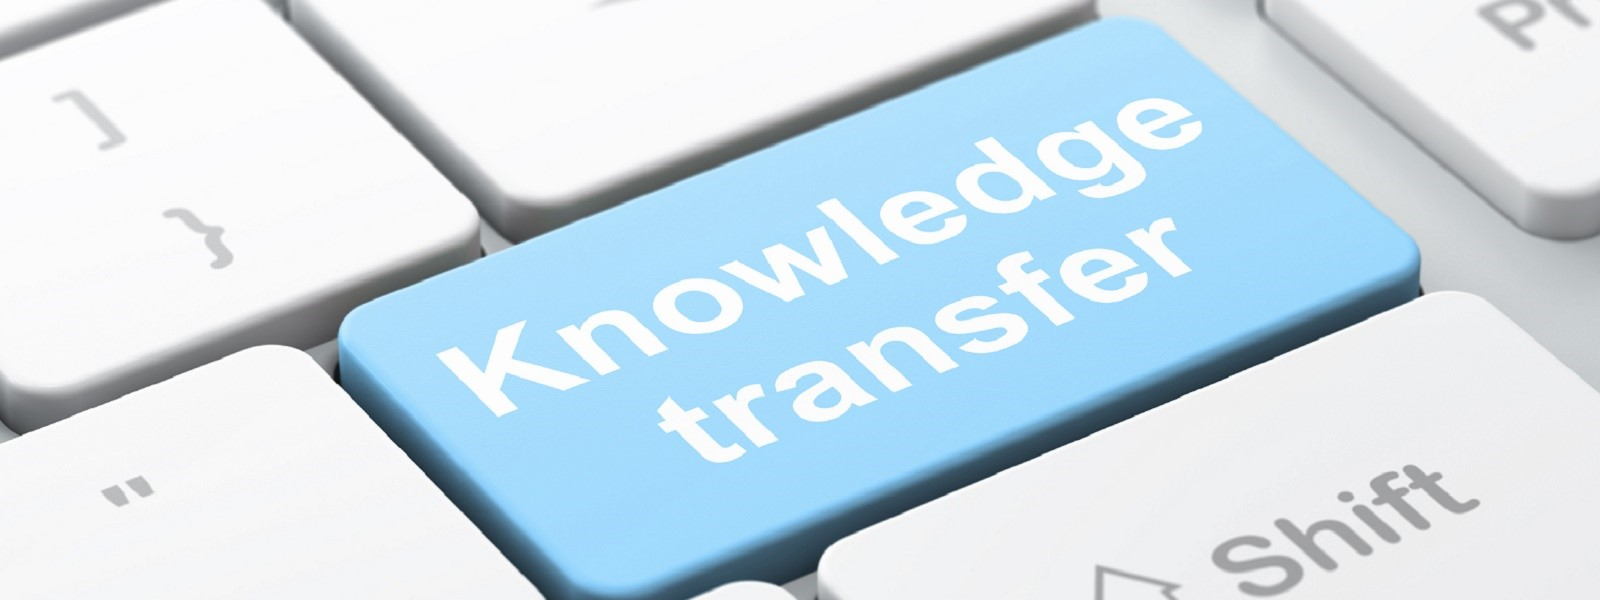 knowledge_transfer_kt_proton